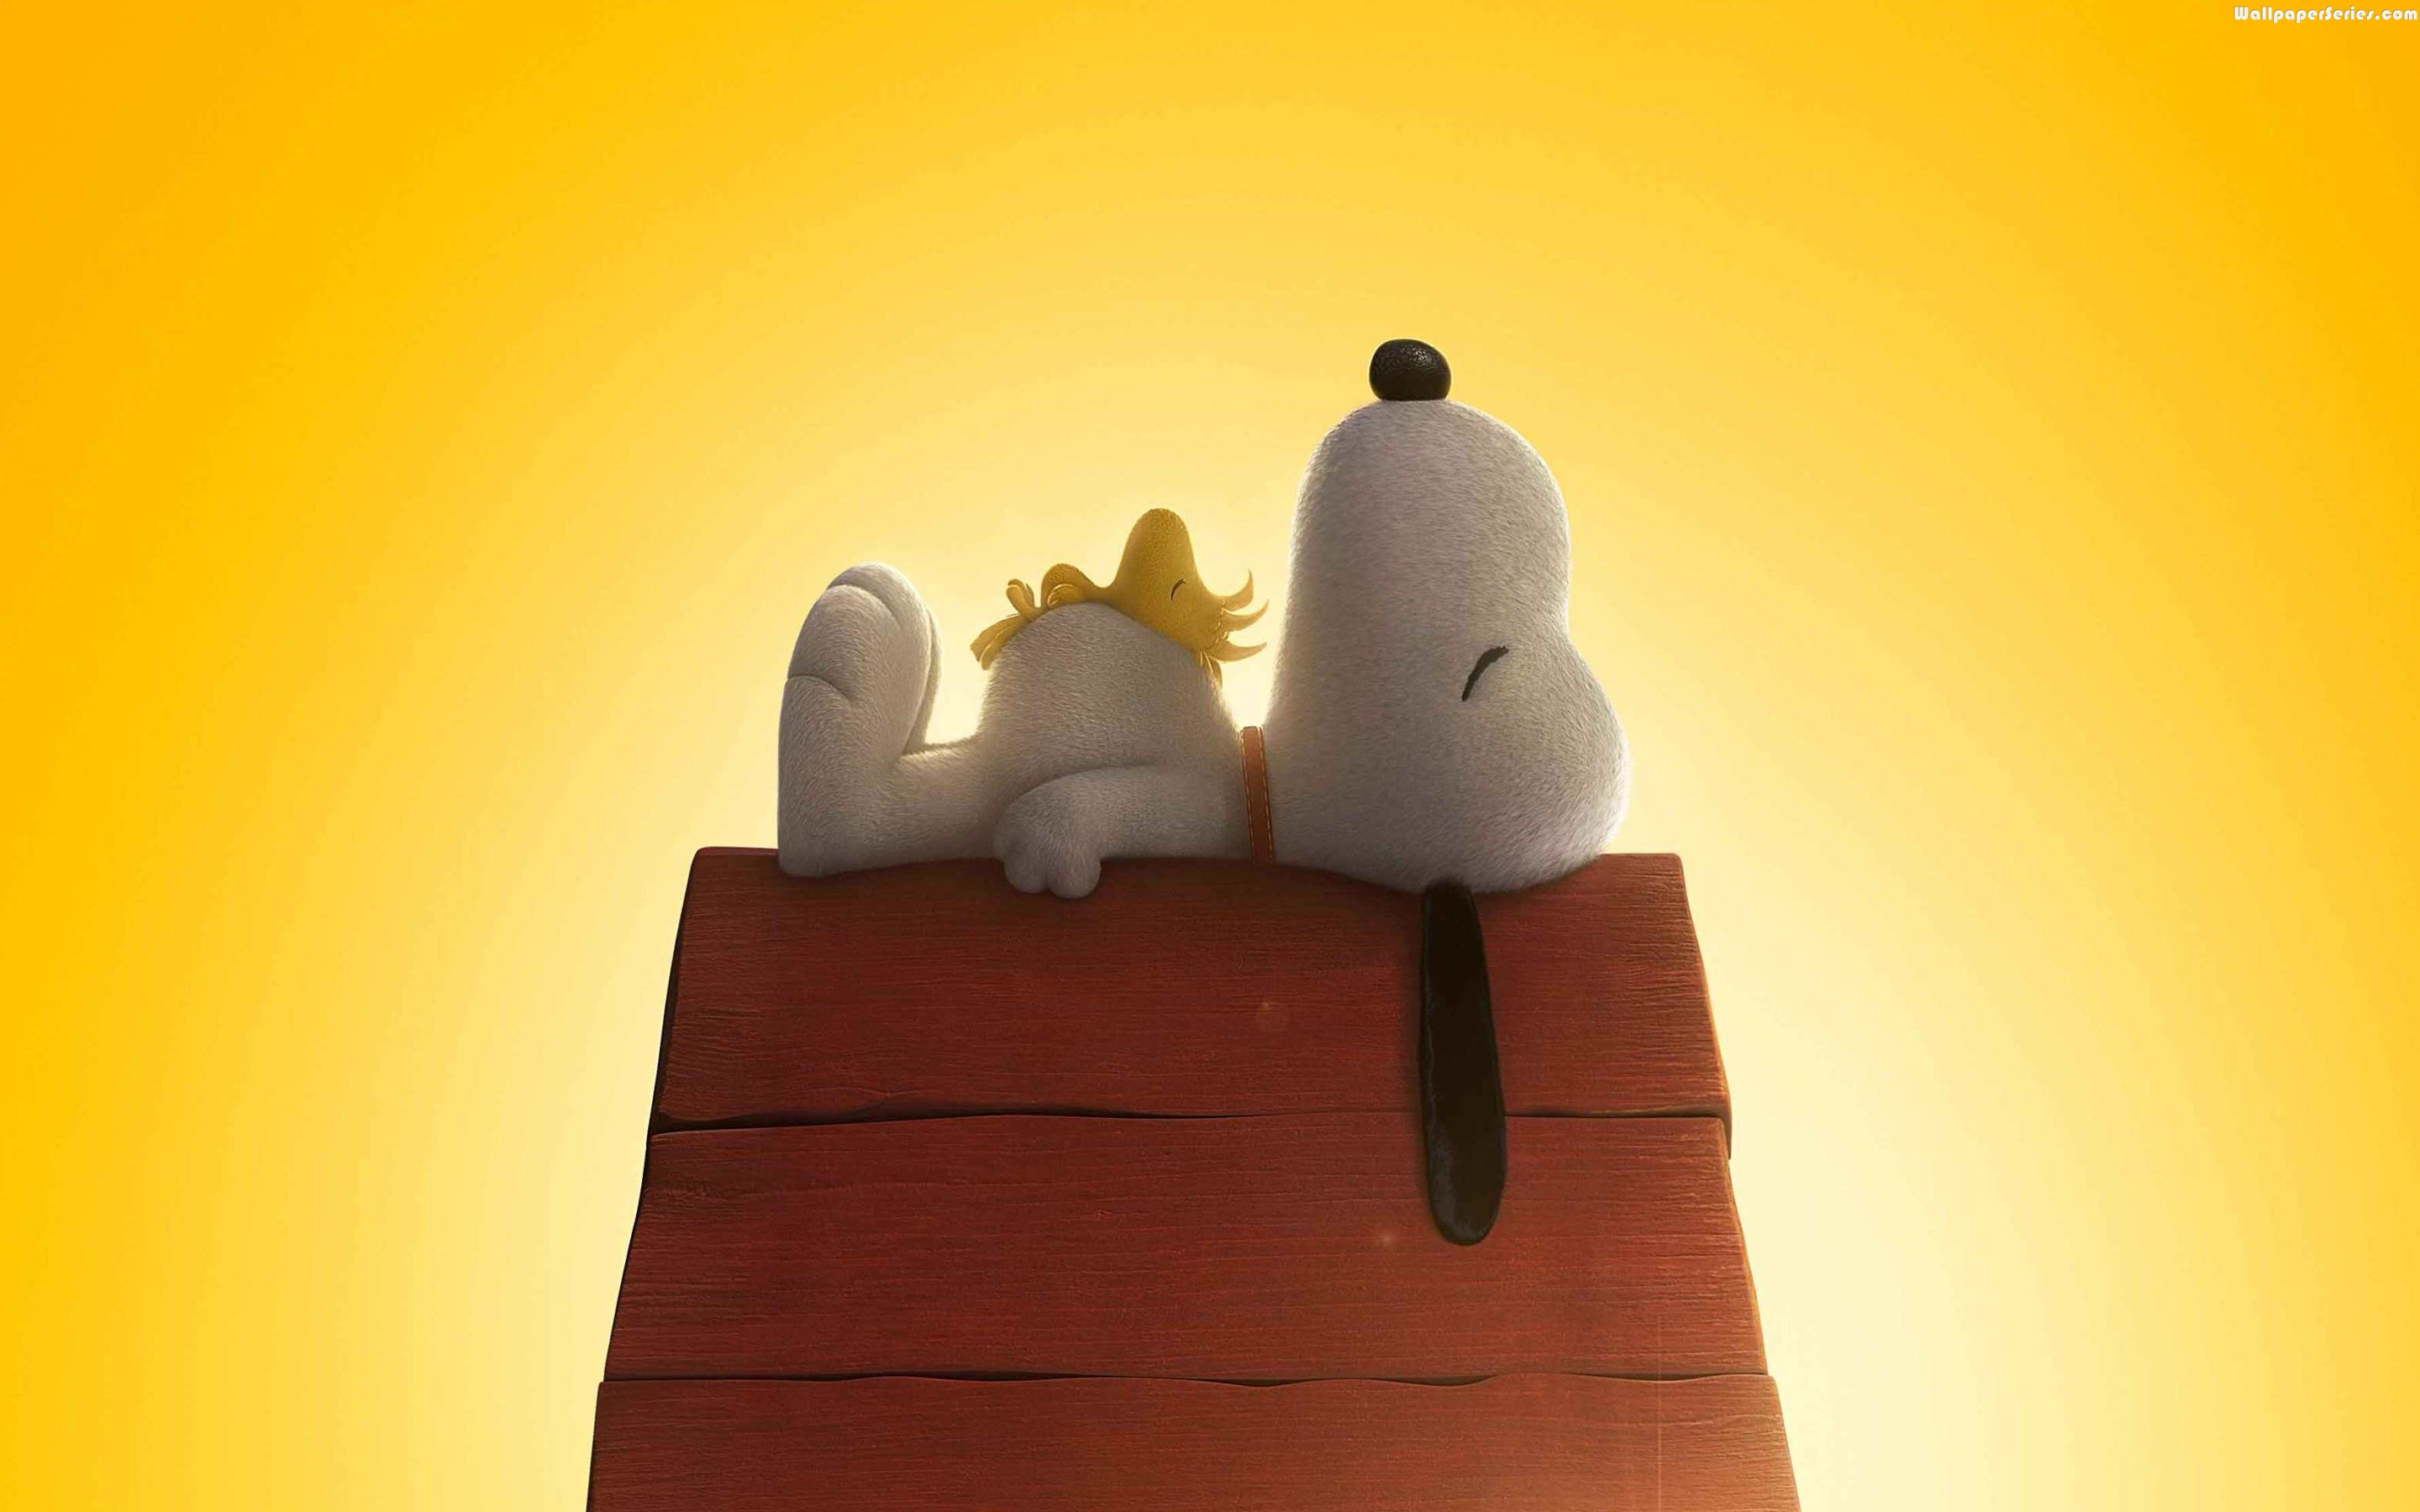 peanuts-snoopy-wallpaper